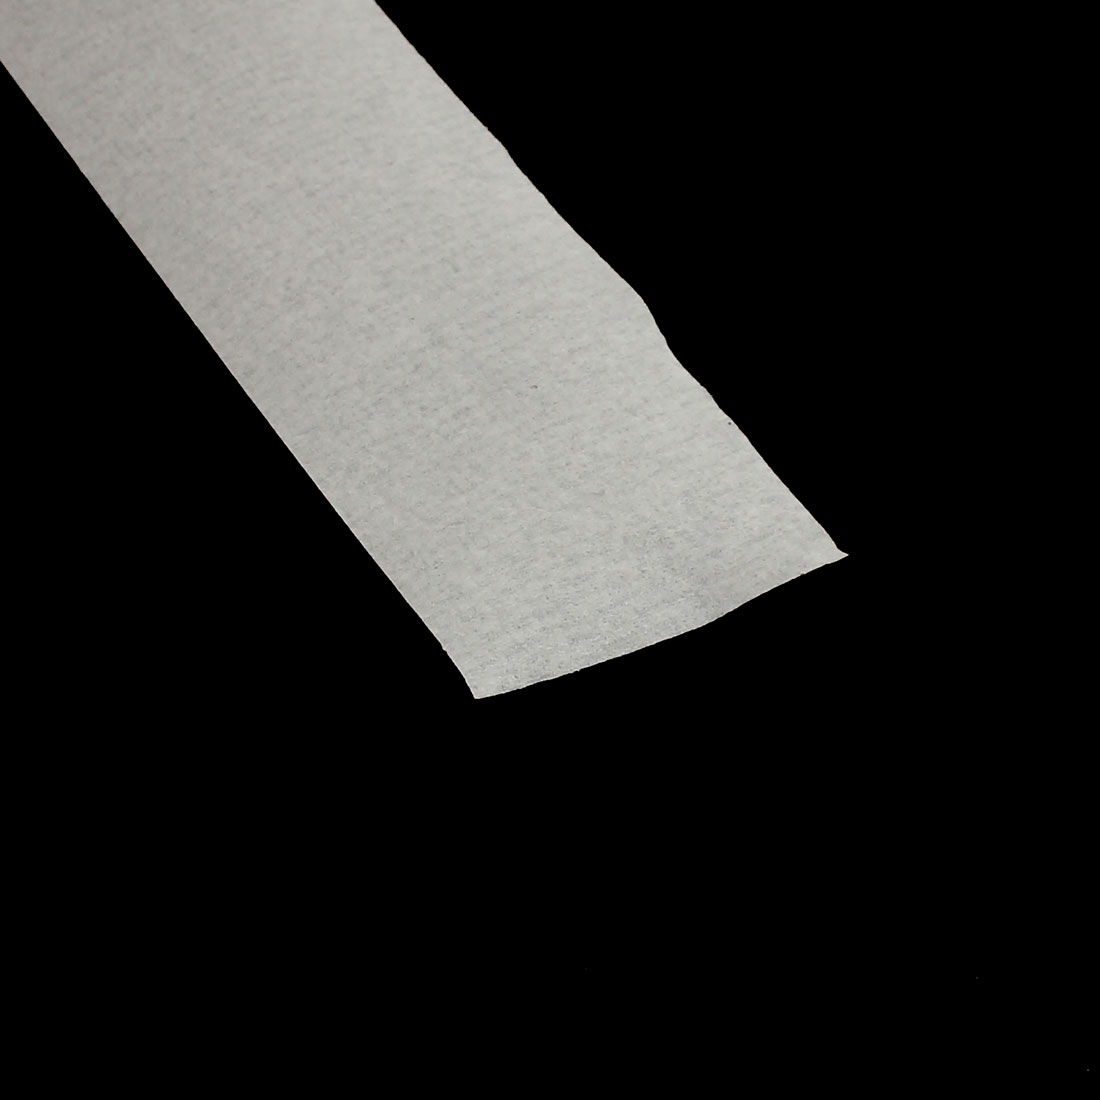 Adhesive Paper Painting Writing Decoration Tape White 4.0cm x 50M Length - image 1 of 3